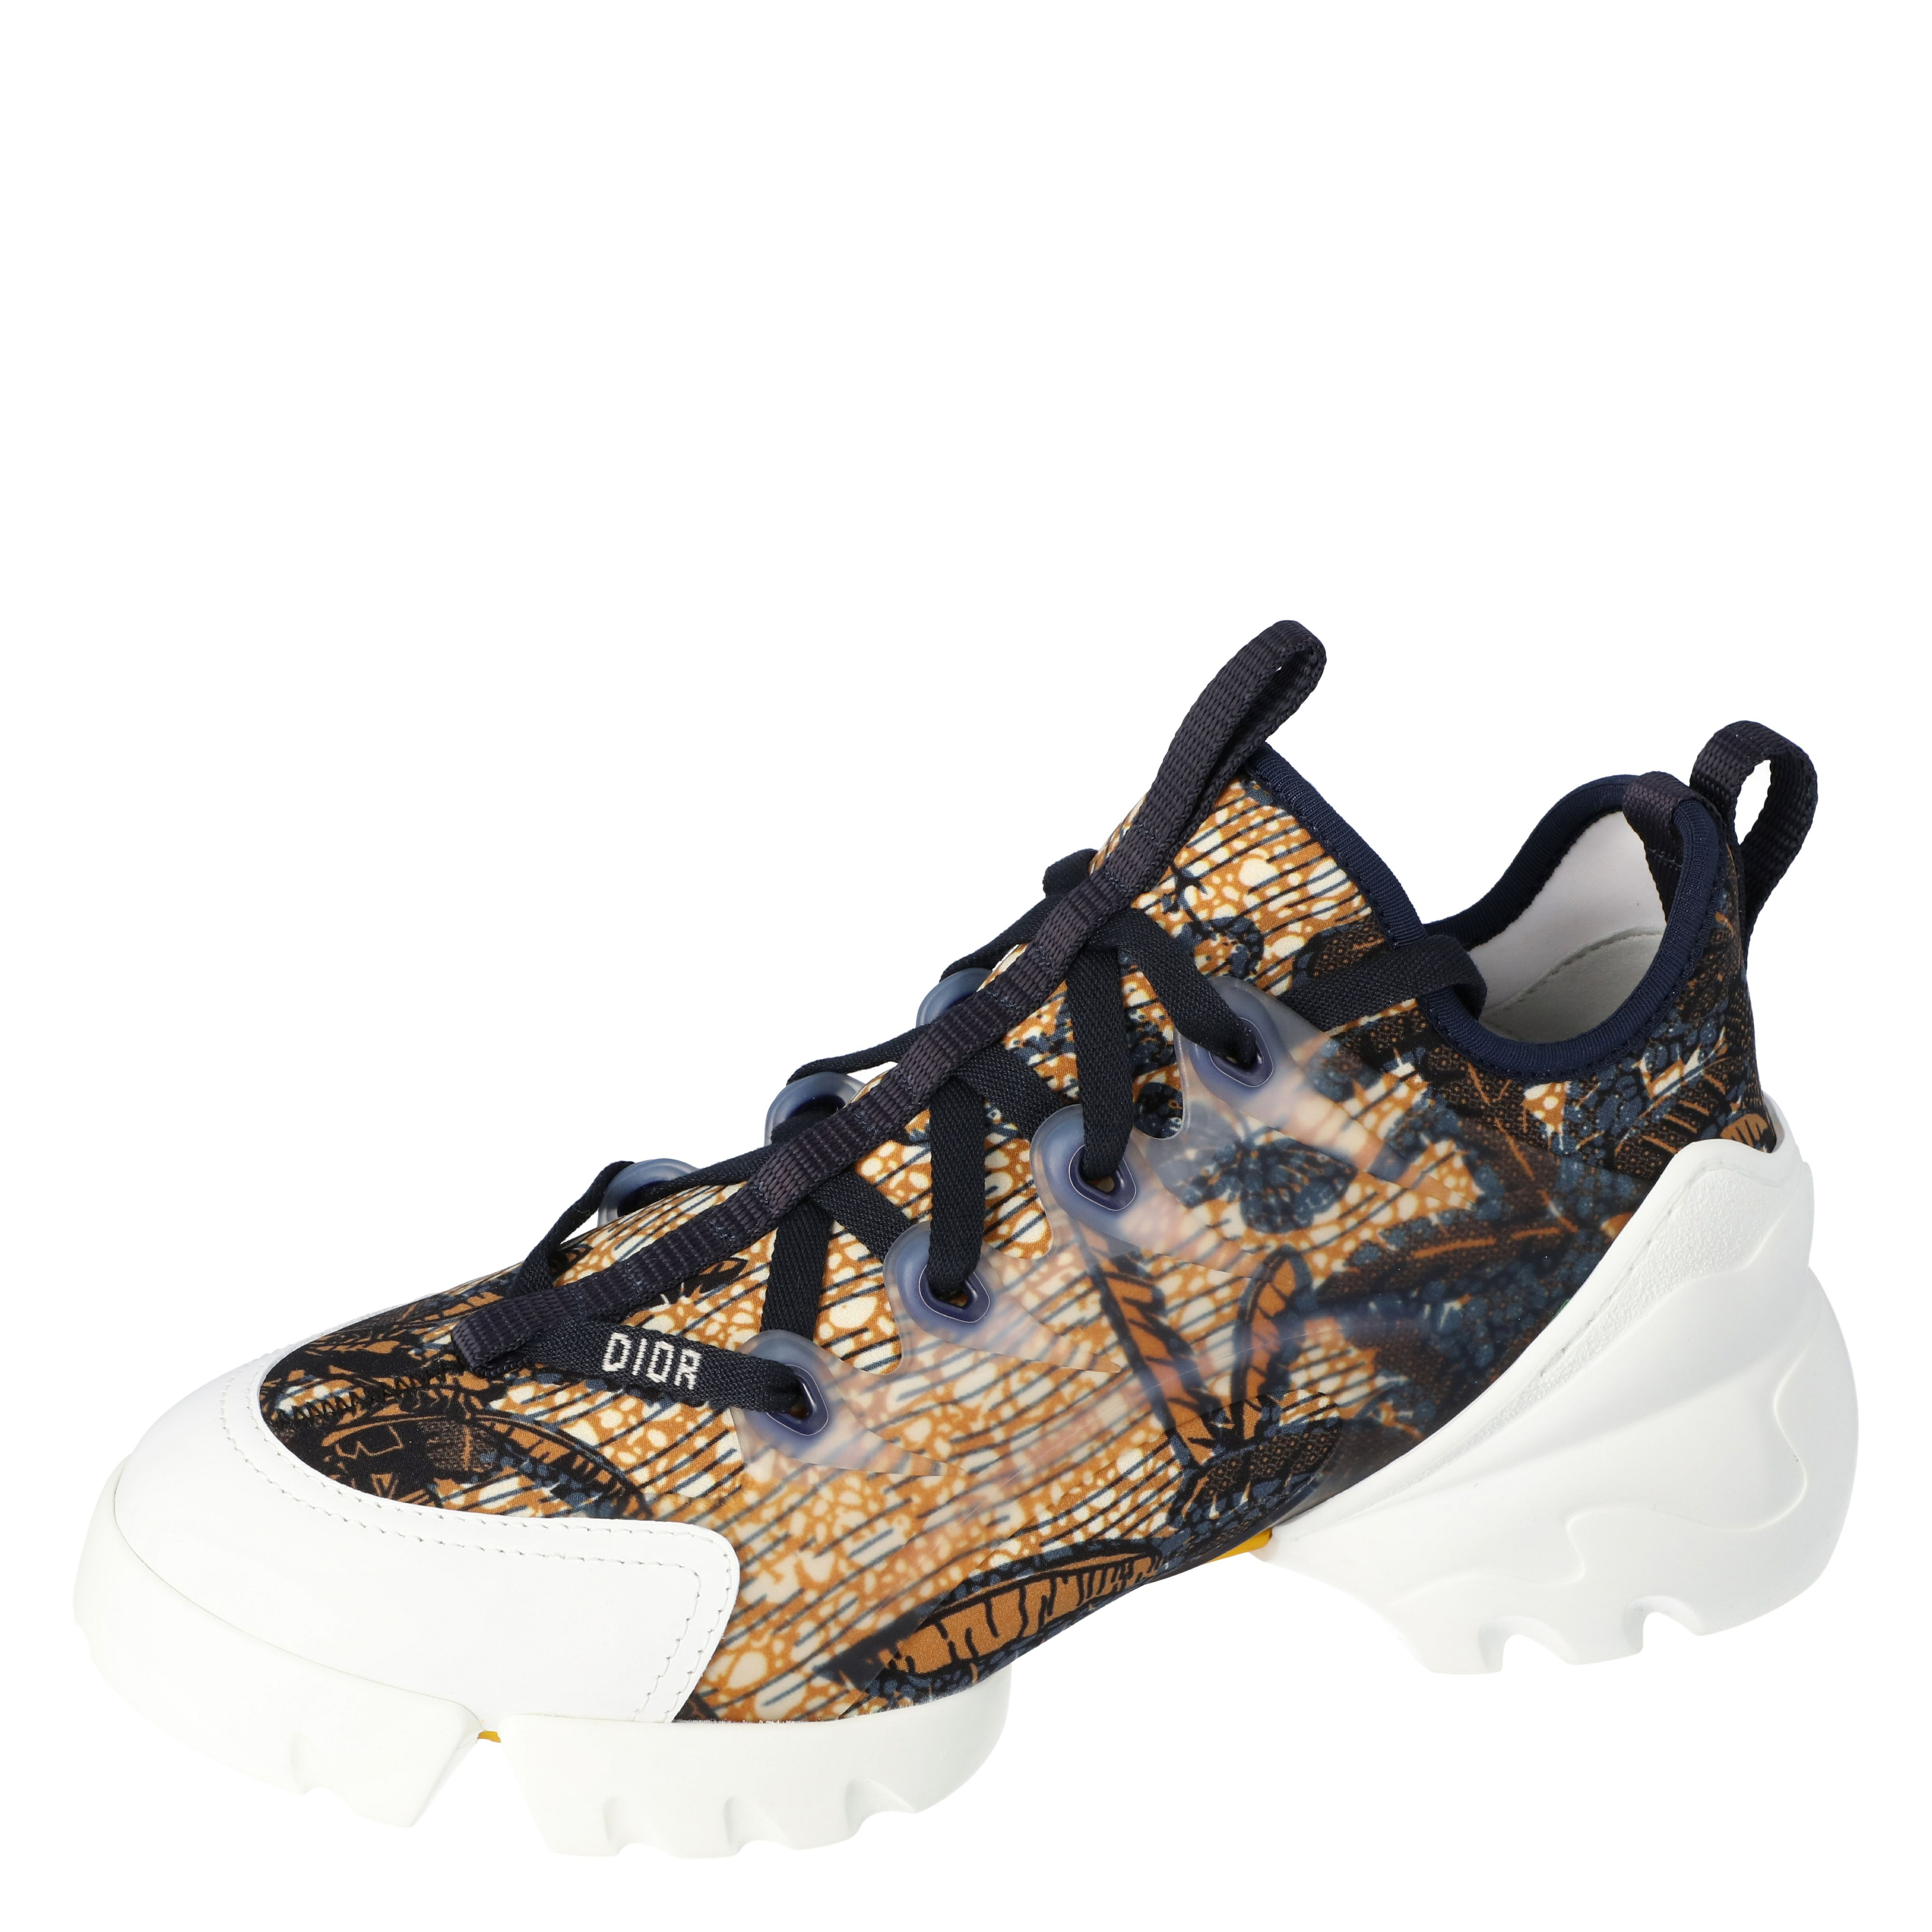 Dior Multicolor Tropicalia Print Technical Fabric D-Connect Platform Sneakers Size 39.5